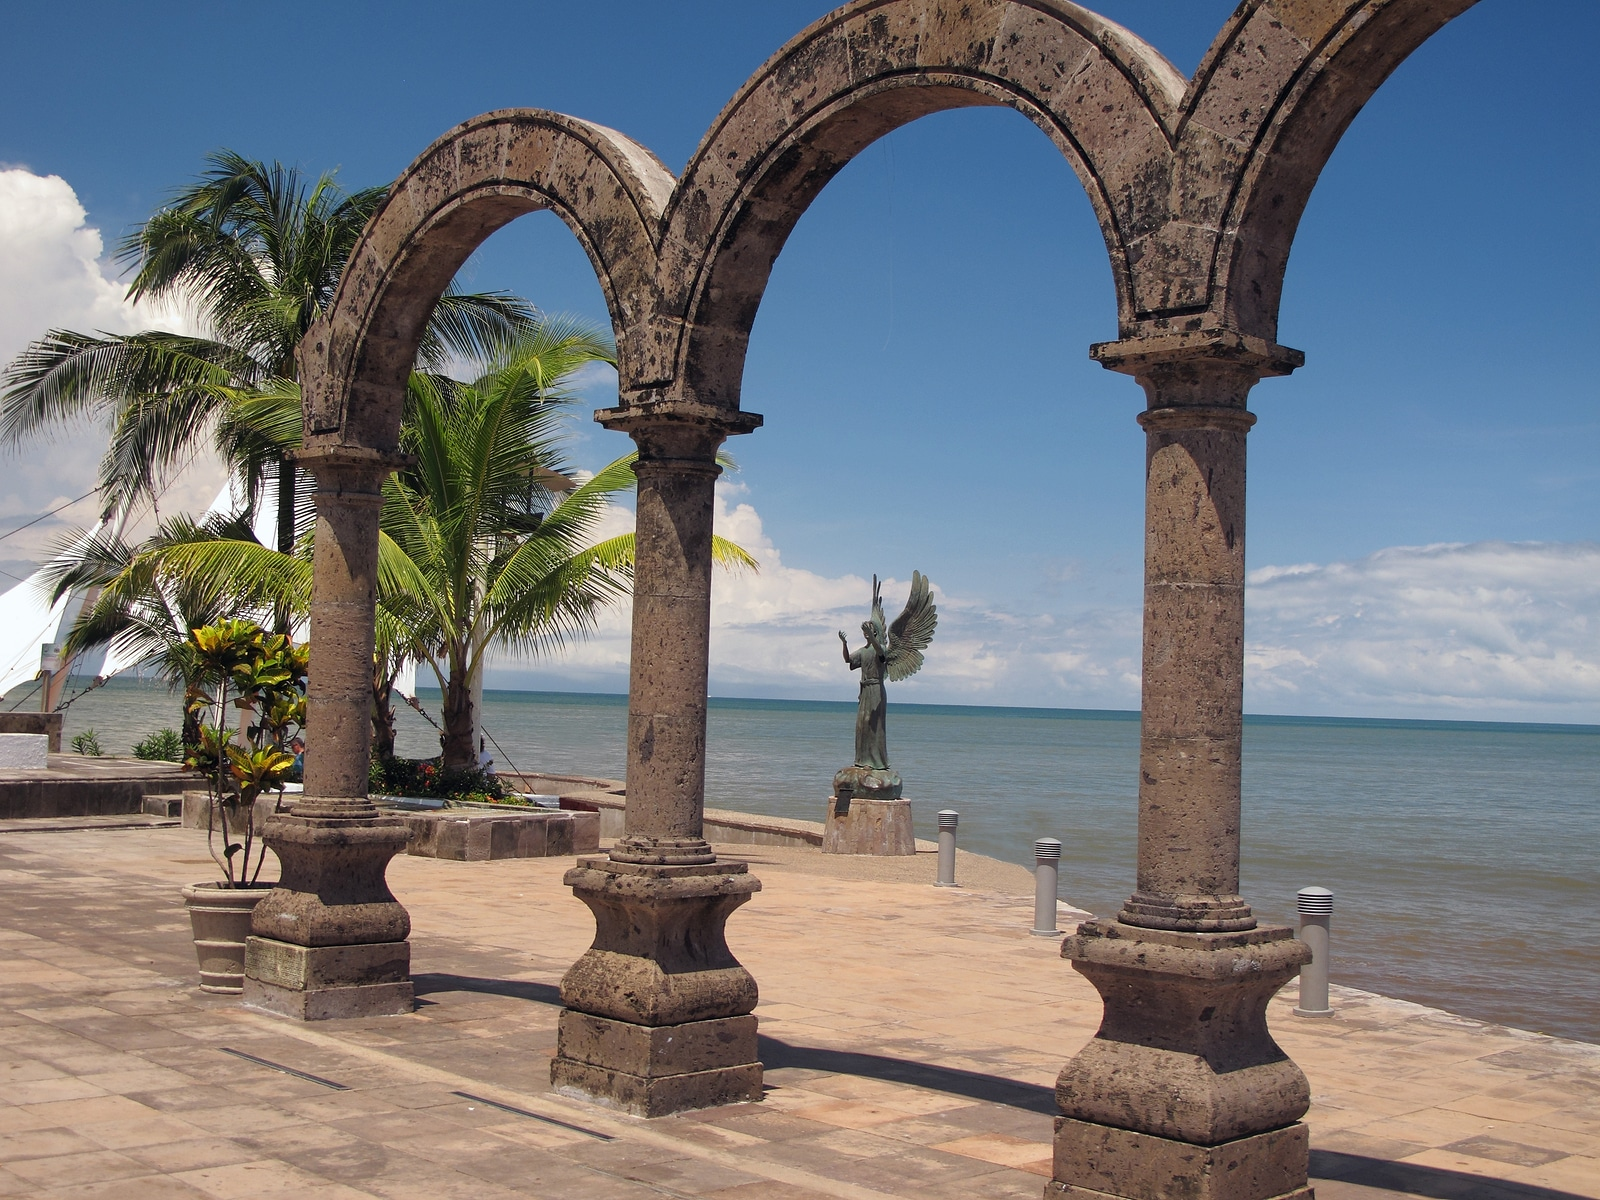 Visita Puerto Vallarta con Krystal International Vacation Club